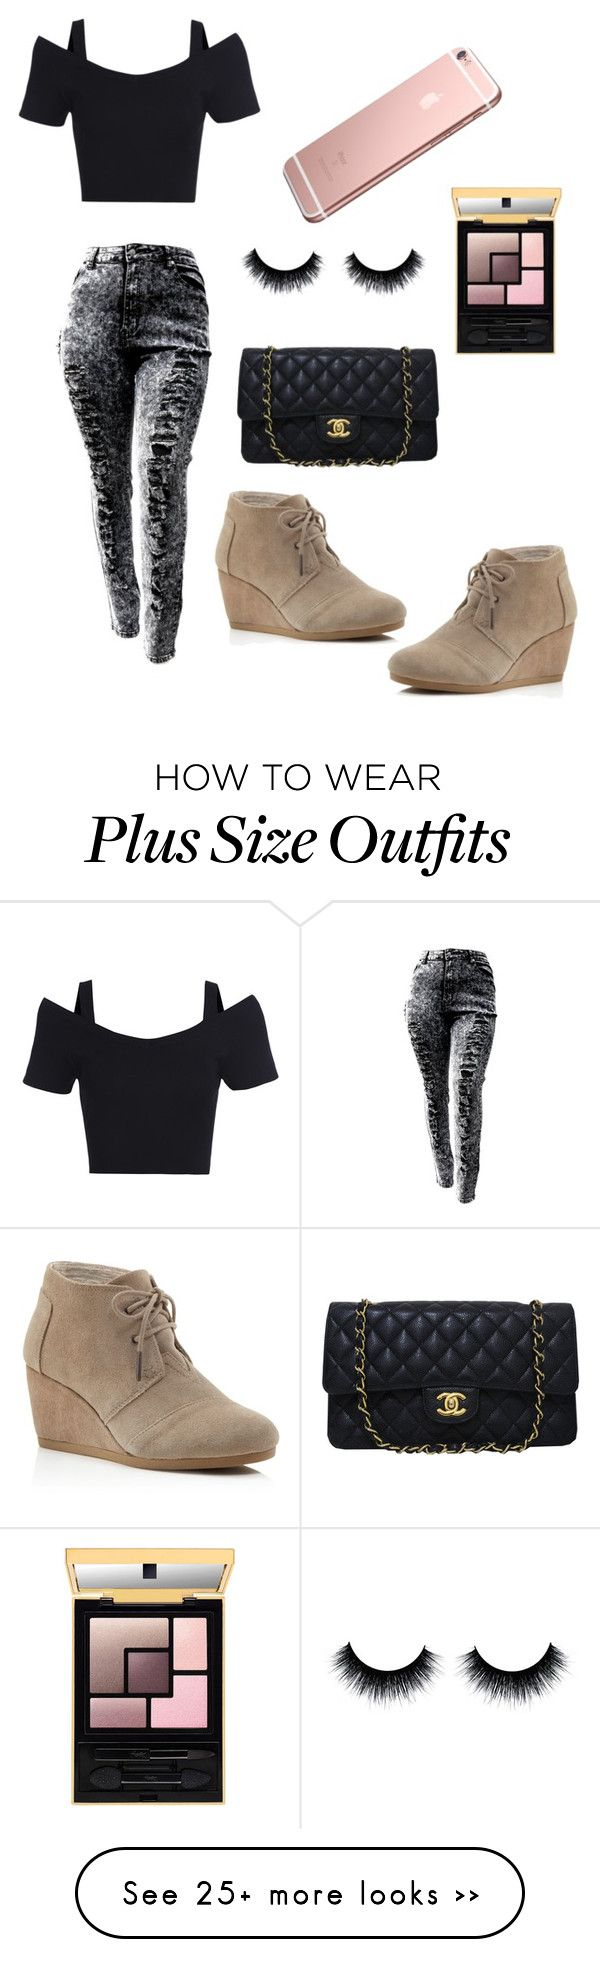 """........?"" by jhanny21 on Polyvore featuring TOMS and Chanel"